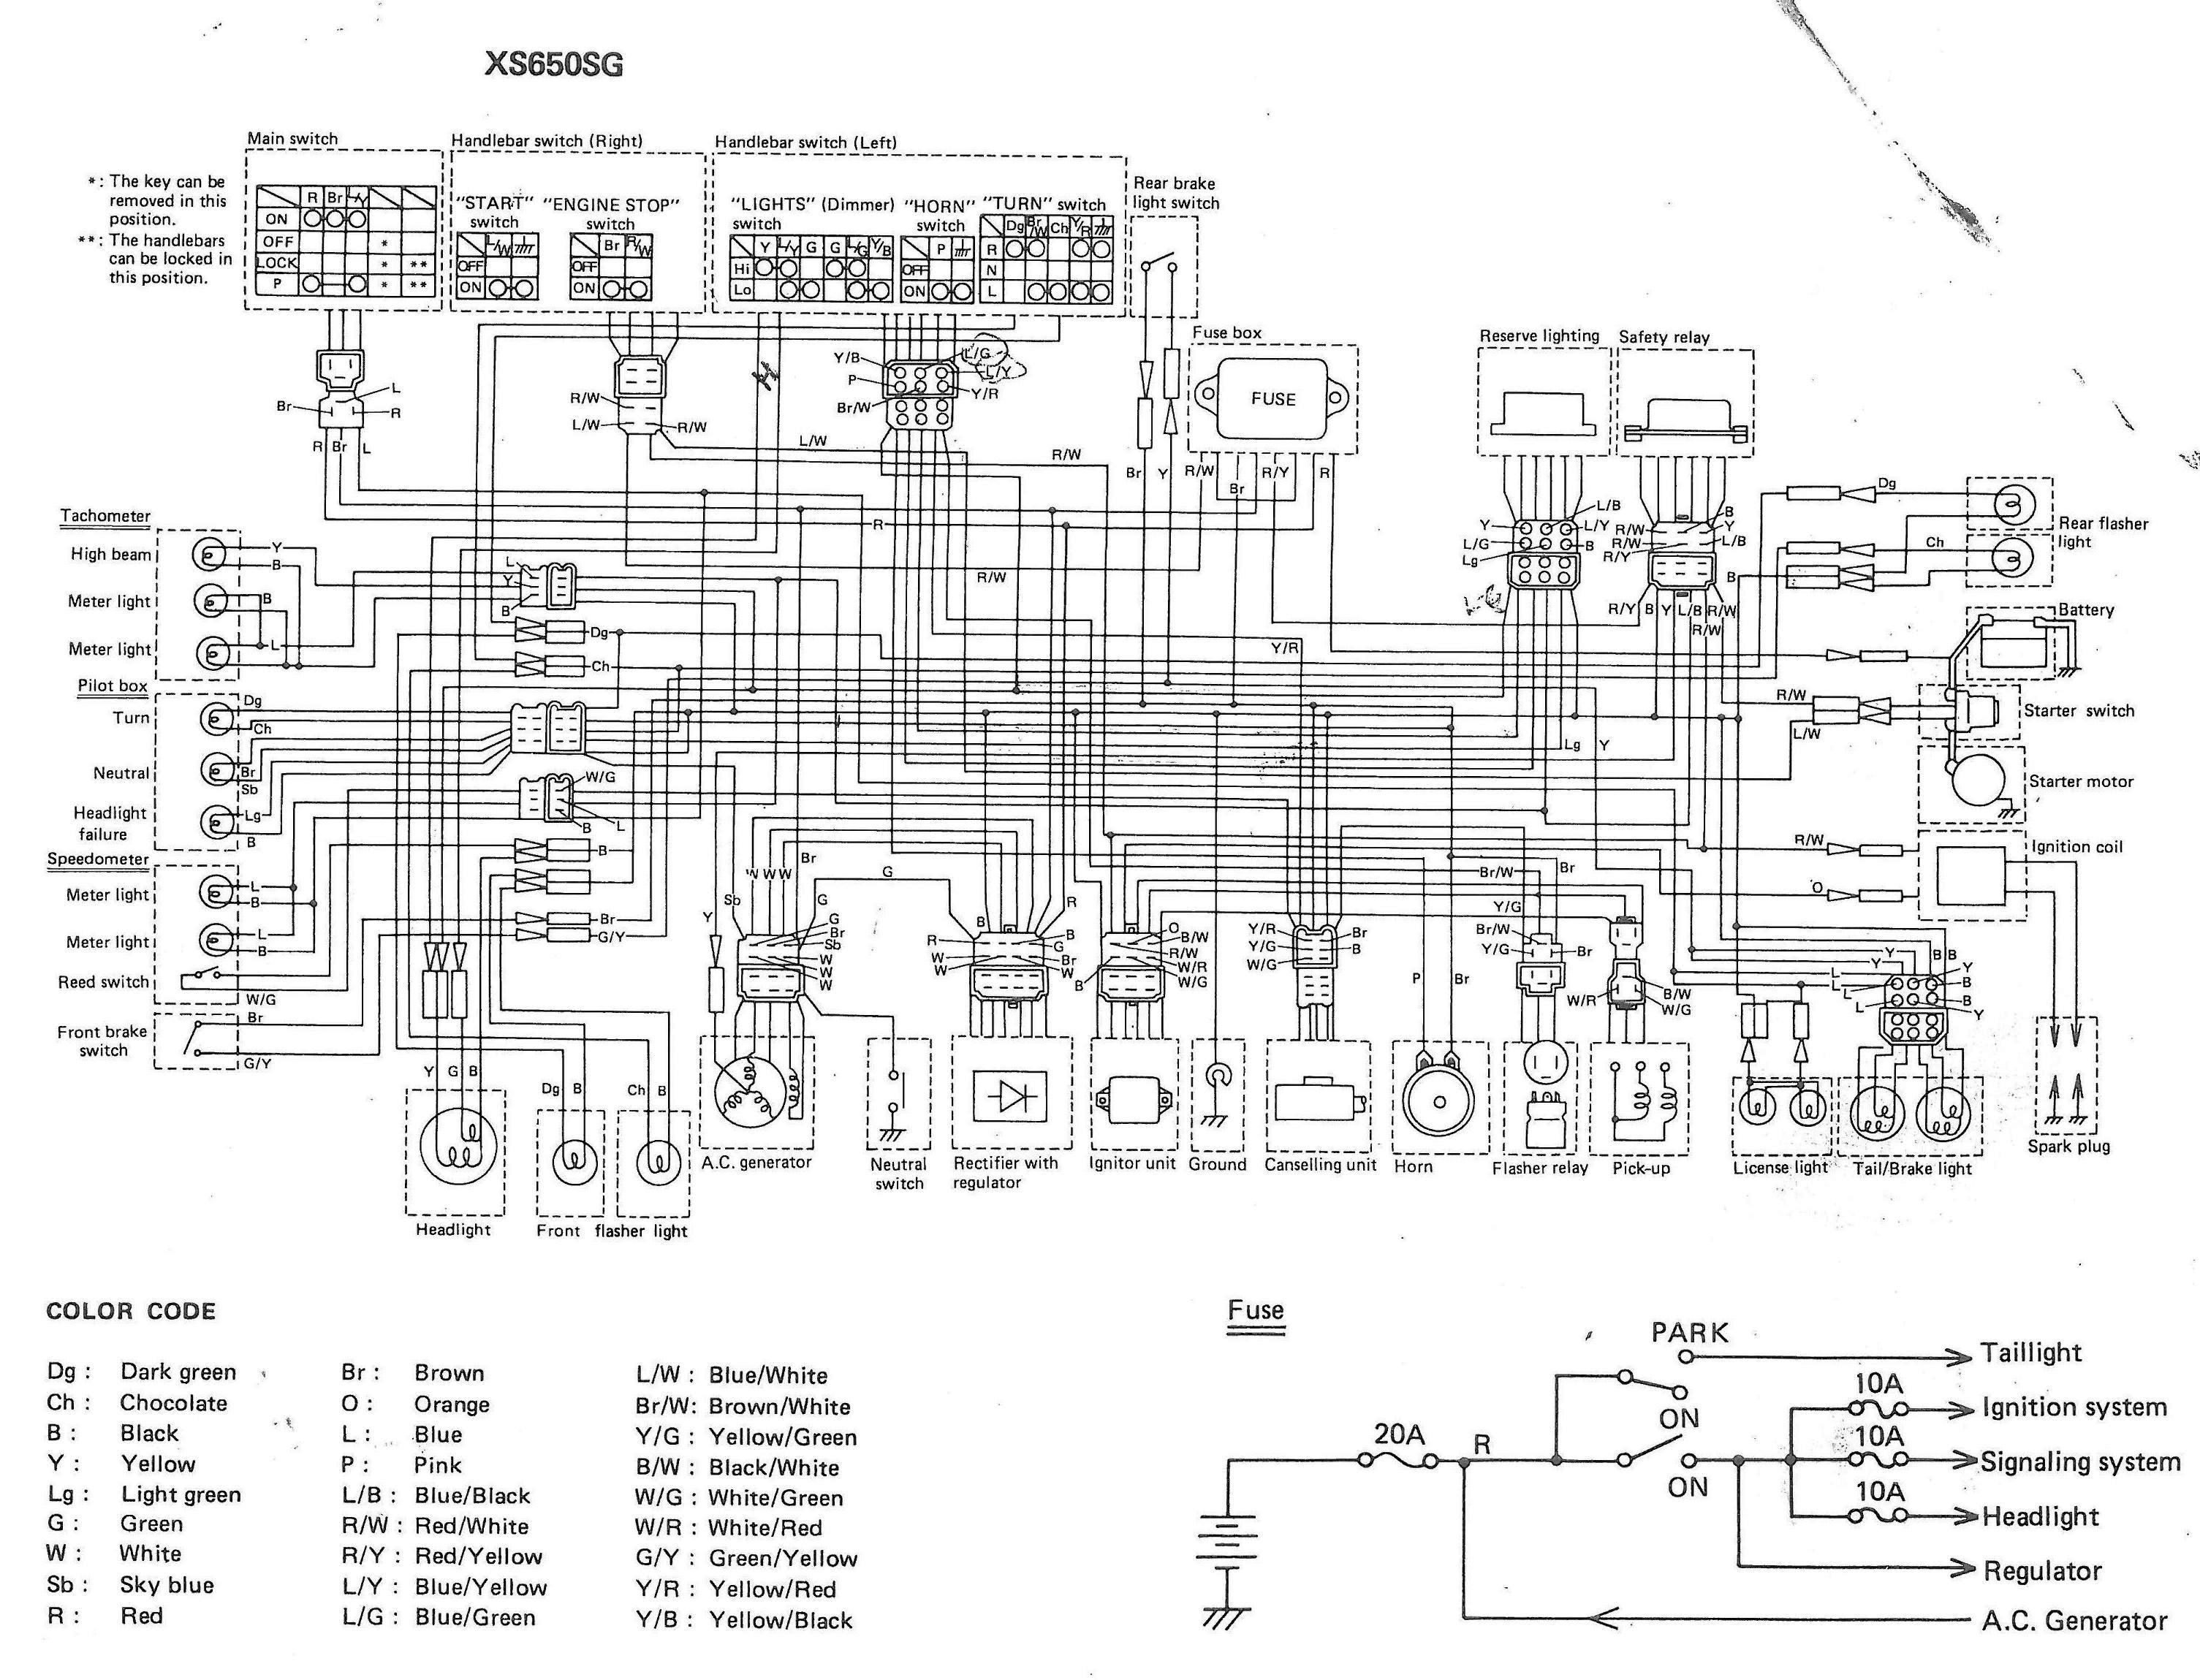 80 xs650sg 1 april 2012 thexscafe 1979 xs650 wiring diagram at soozxer.org